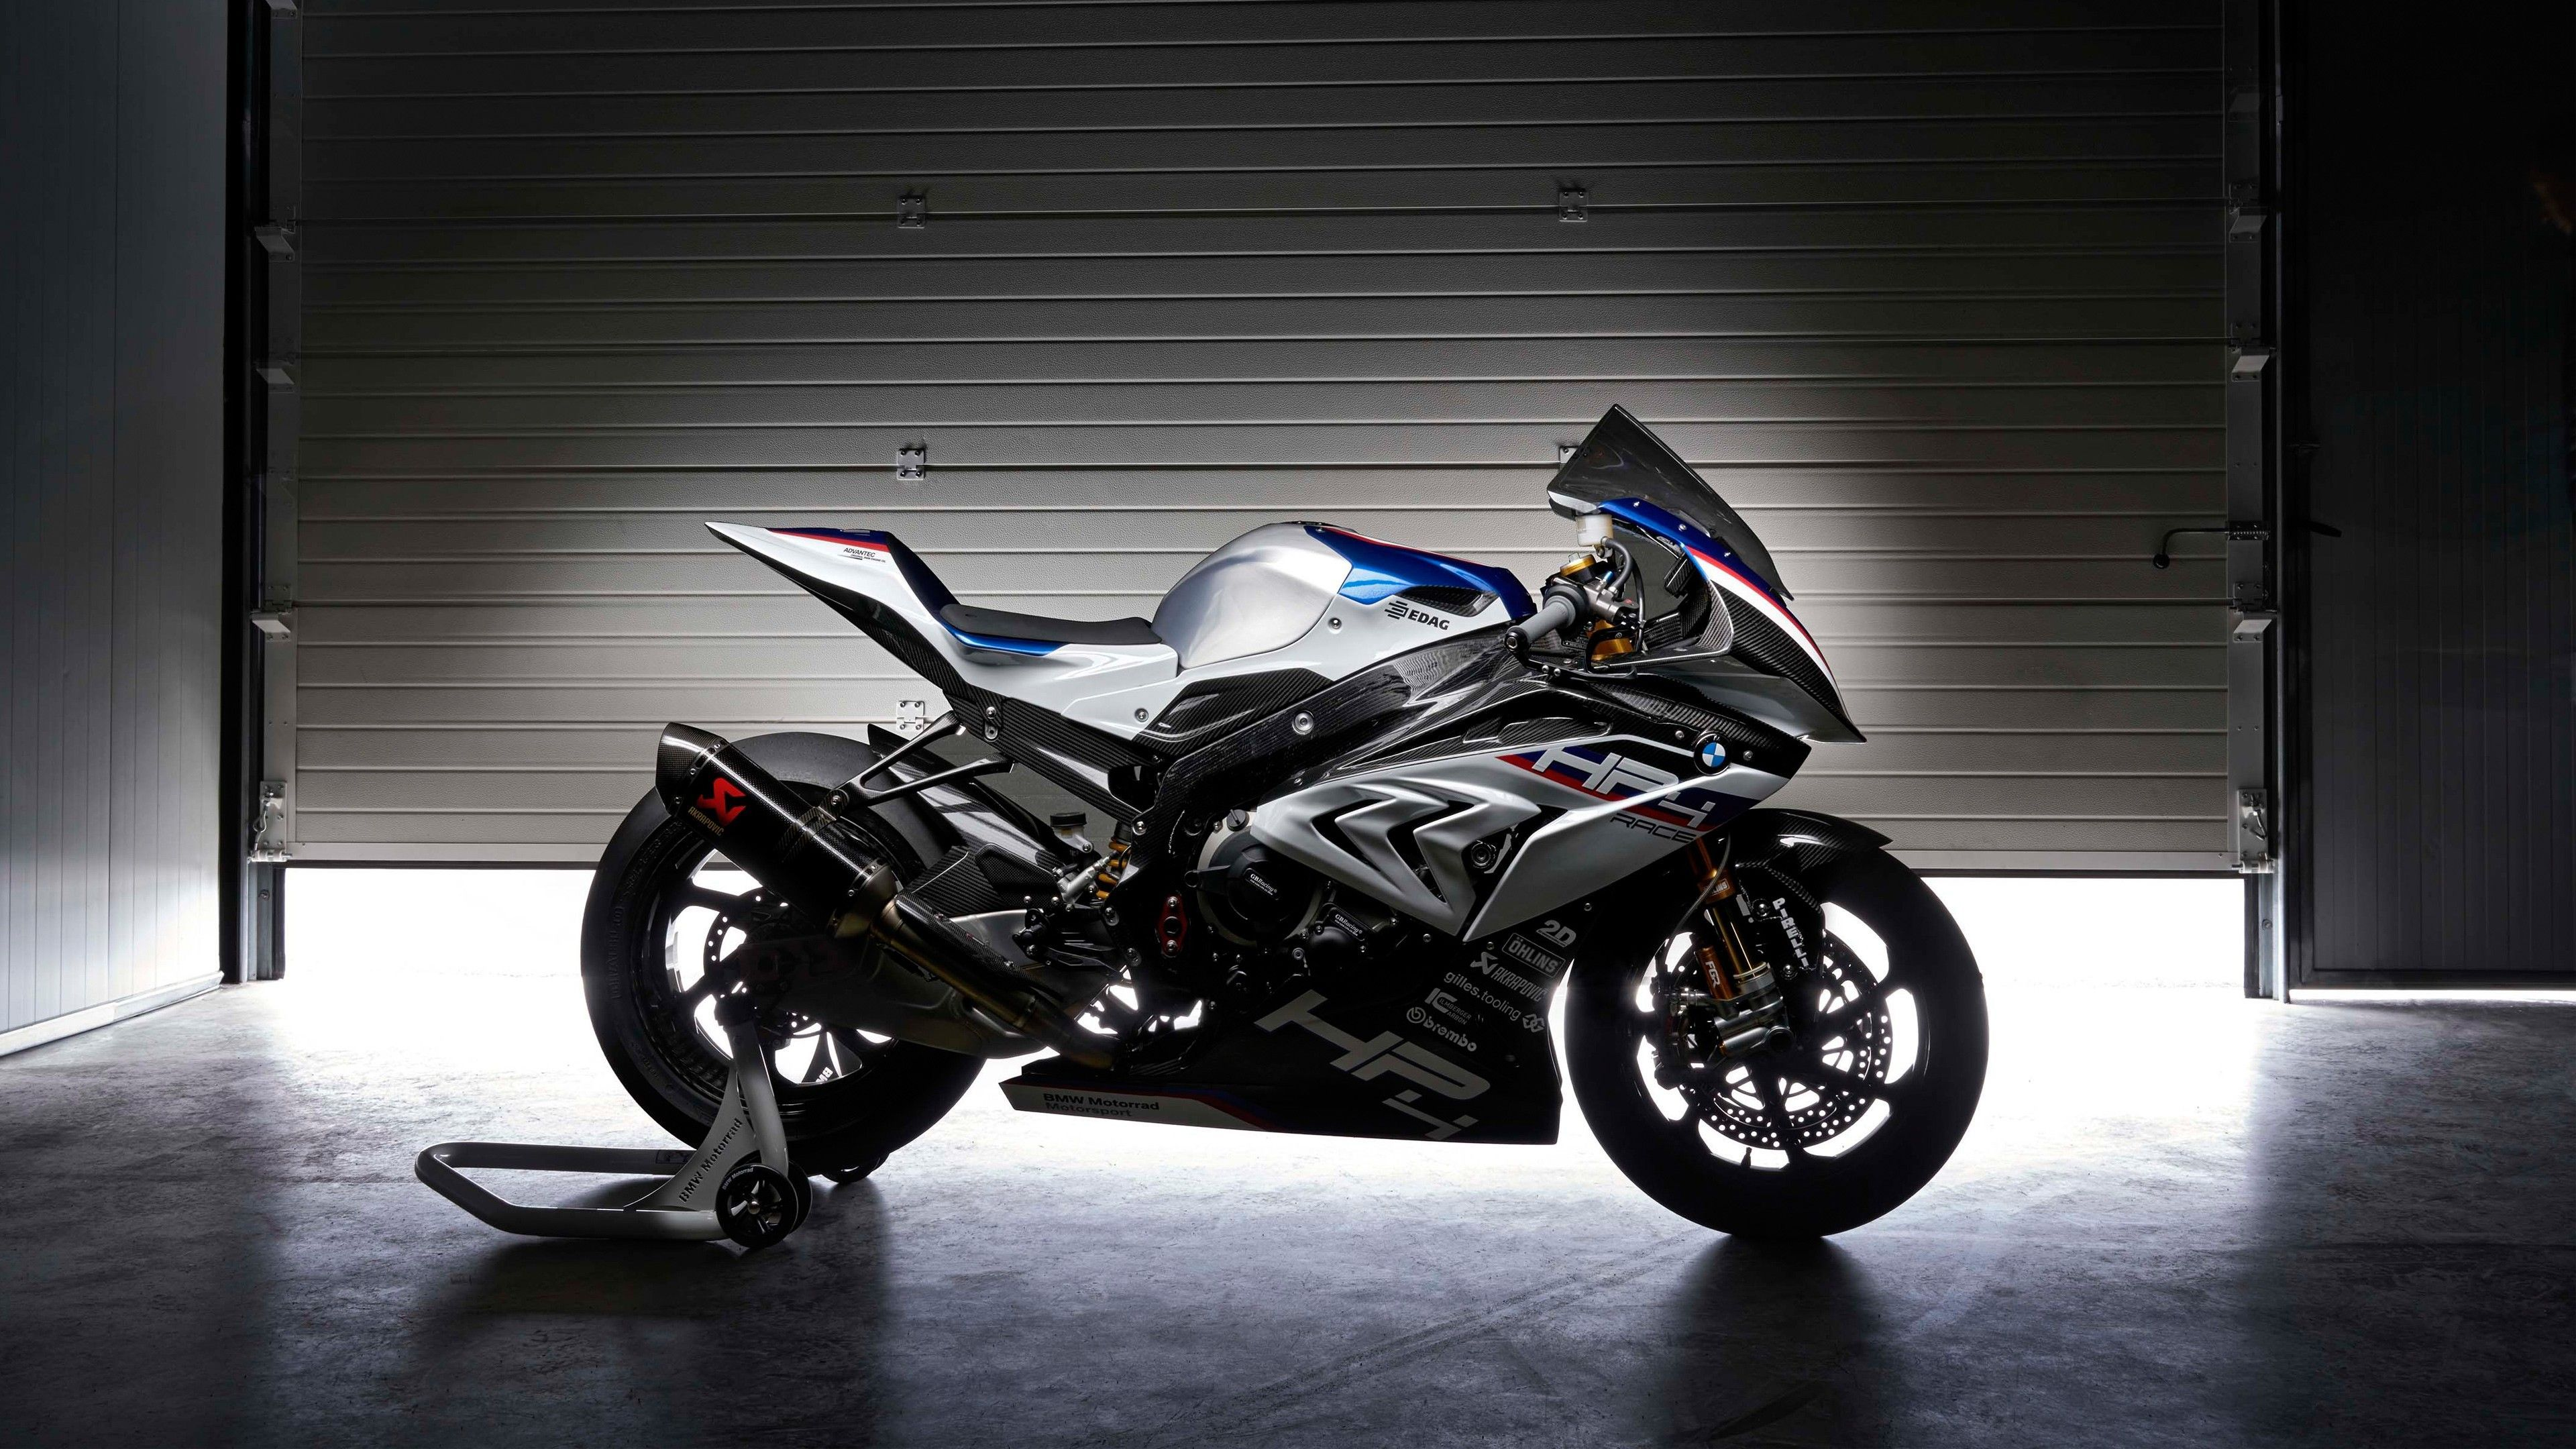 Bmw Hp4 Wallpapers Top Free Bmw Hp4 Backgrounds Wallpaperaccess